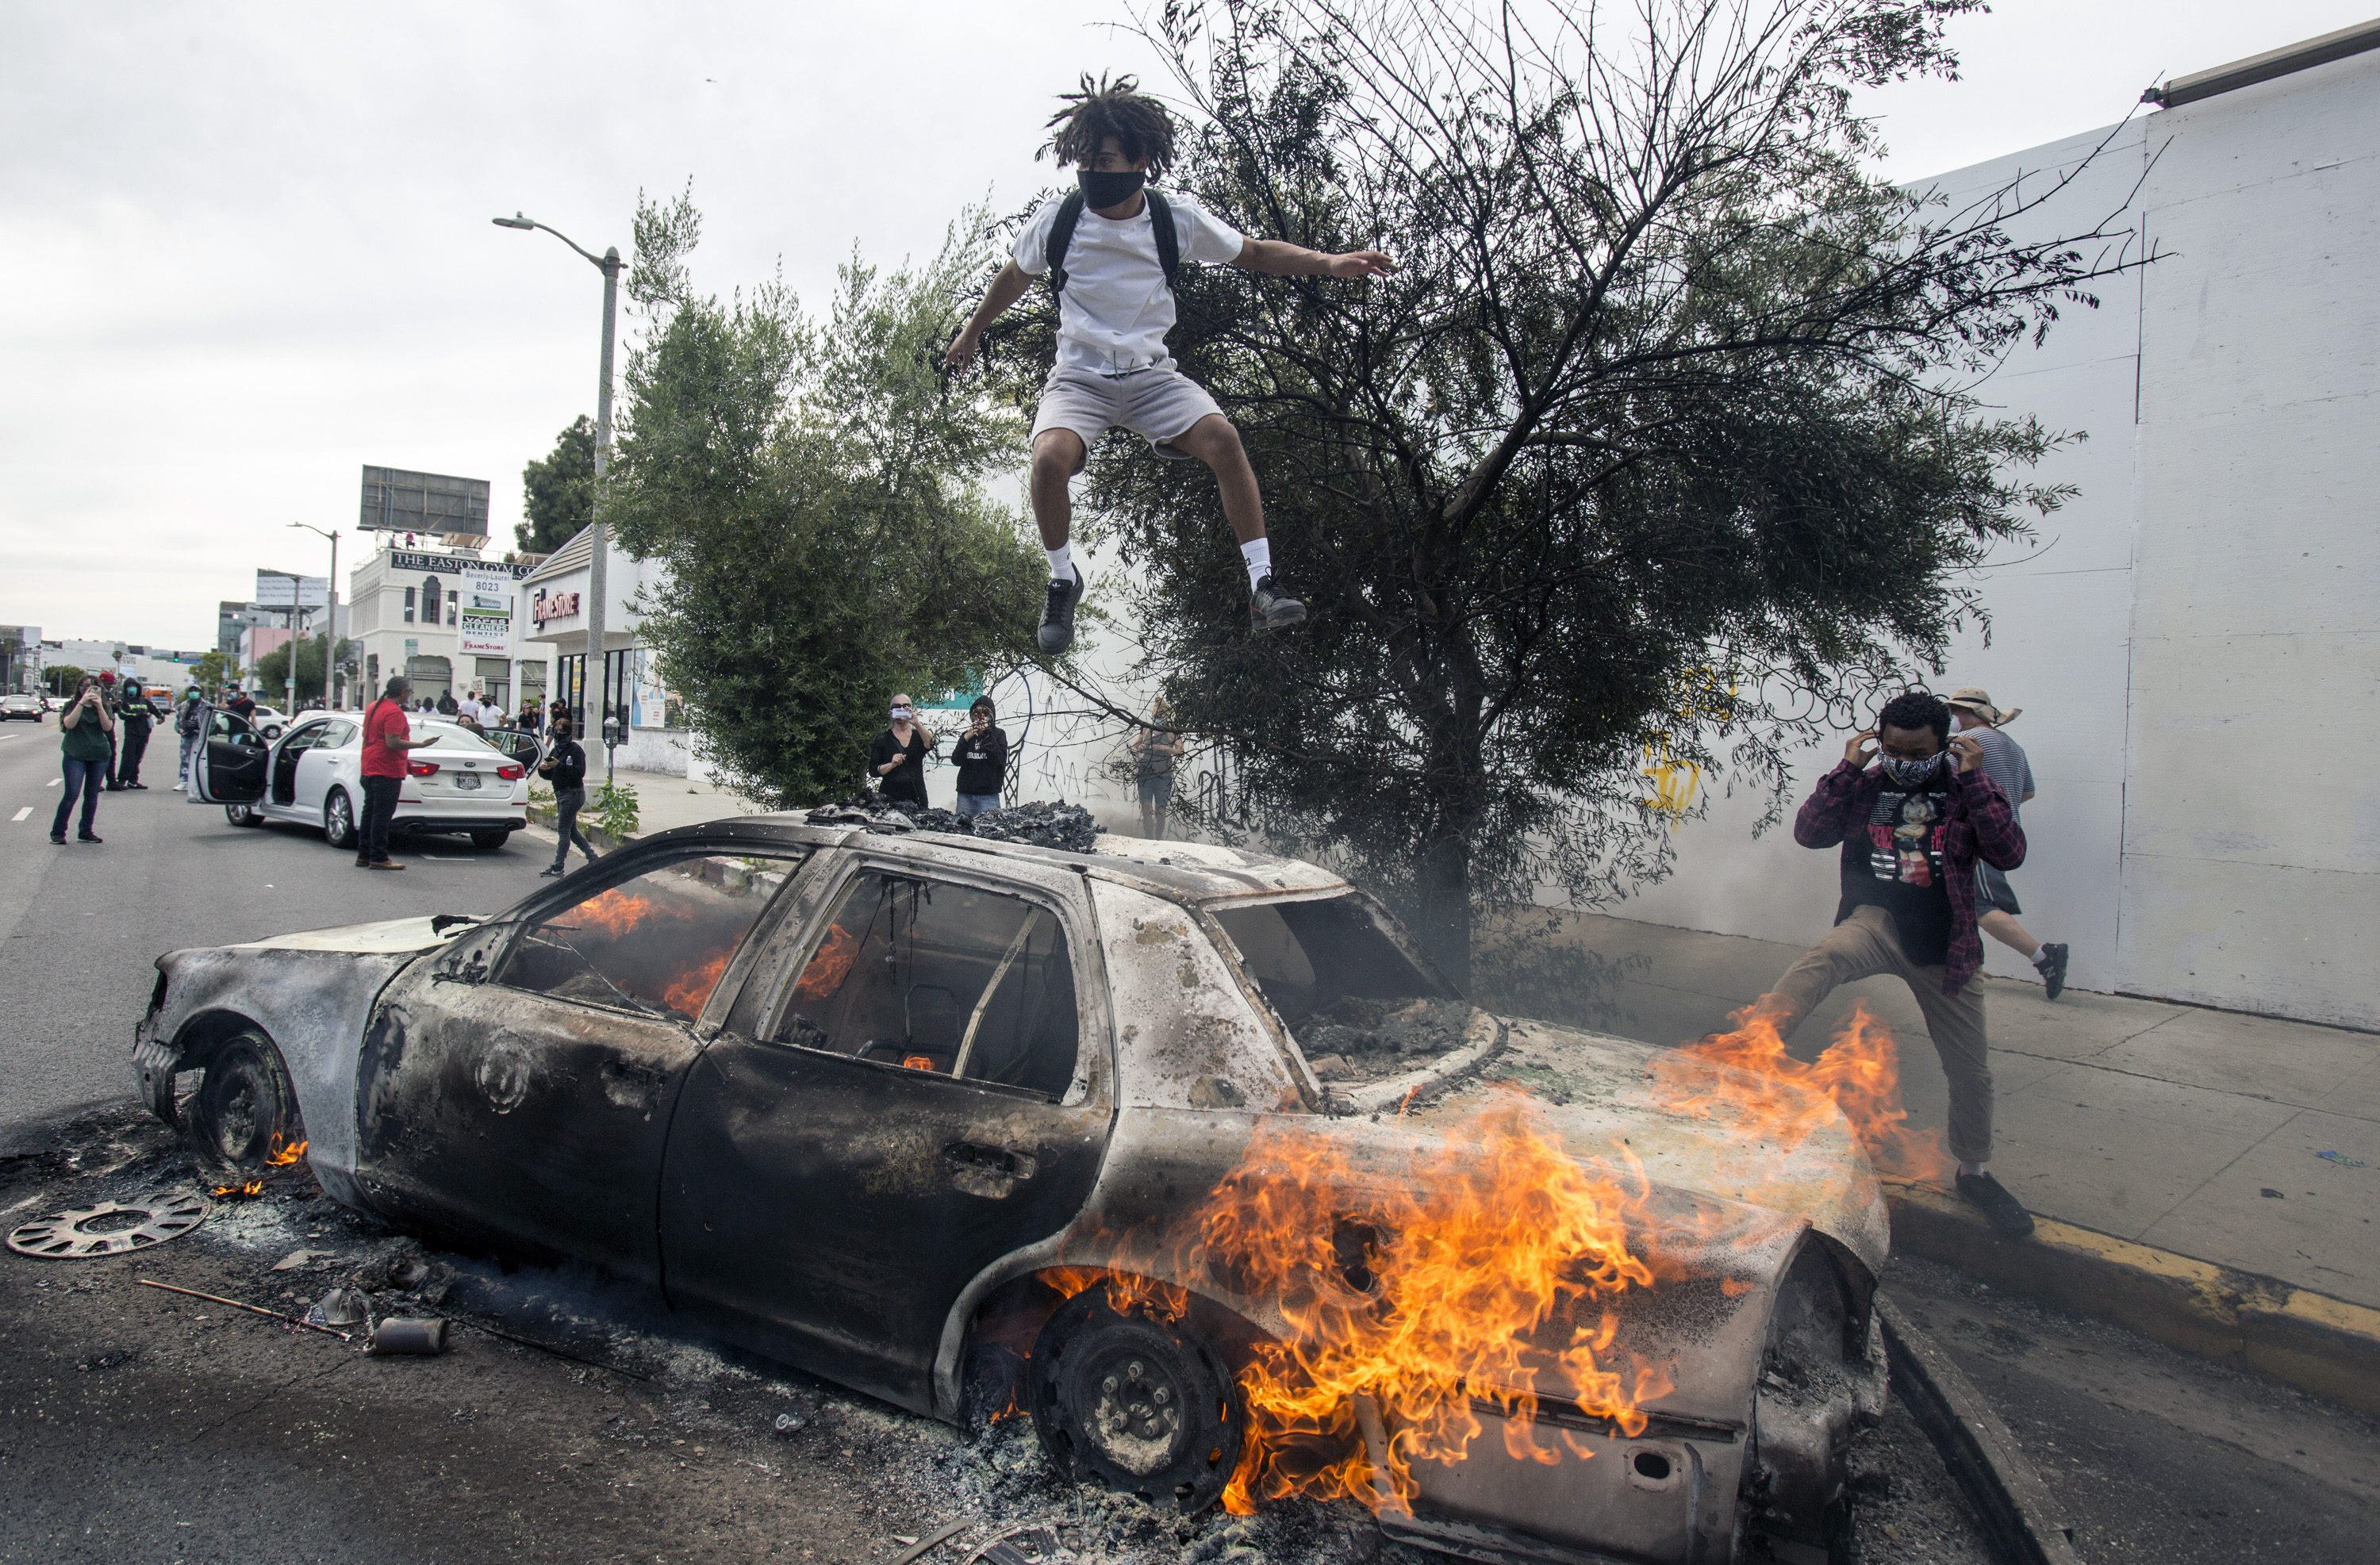 A person jumps on a burning police vehicle in Los Angeles, Saturday, May 30, 2020, during a protest over the death of George Floyd.Photo: AP